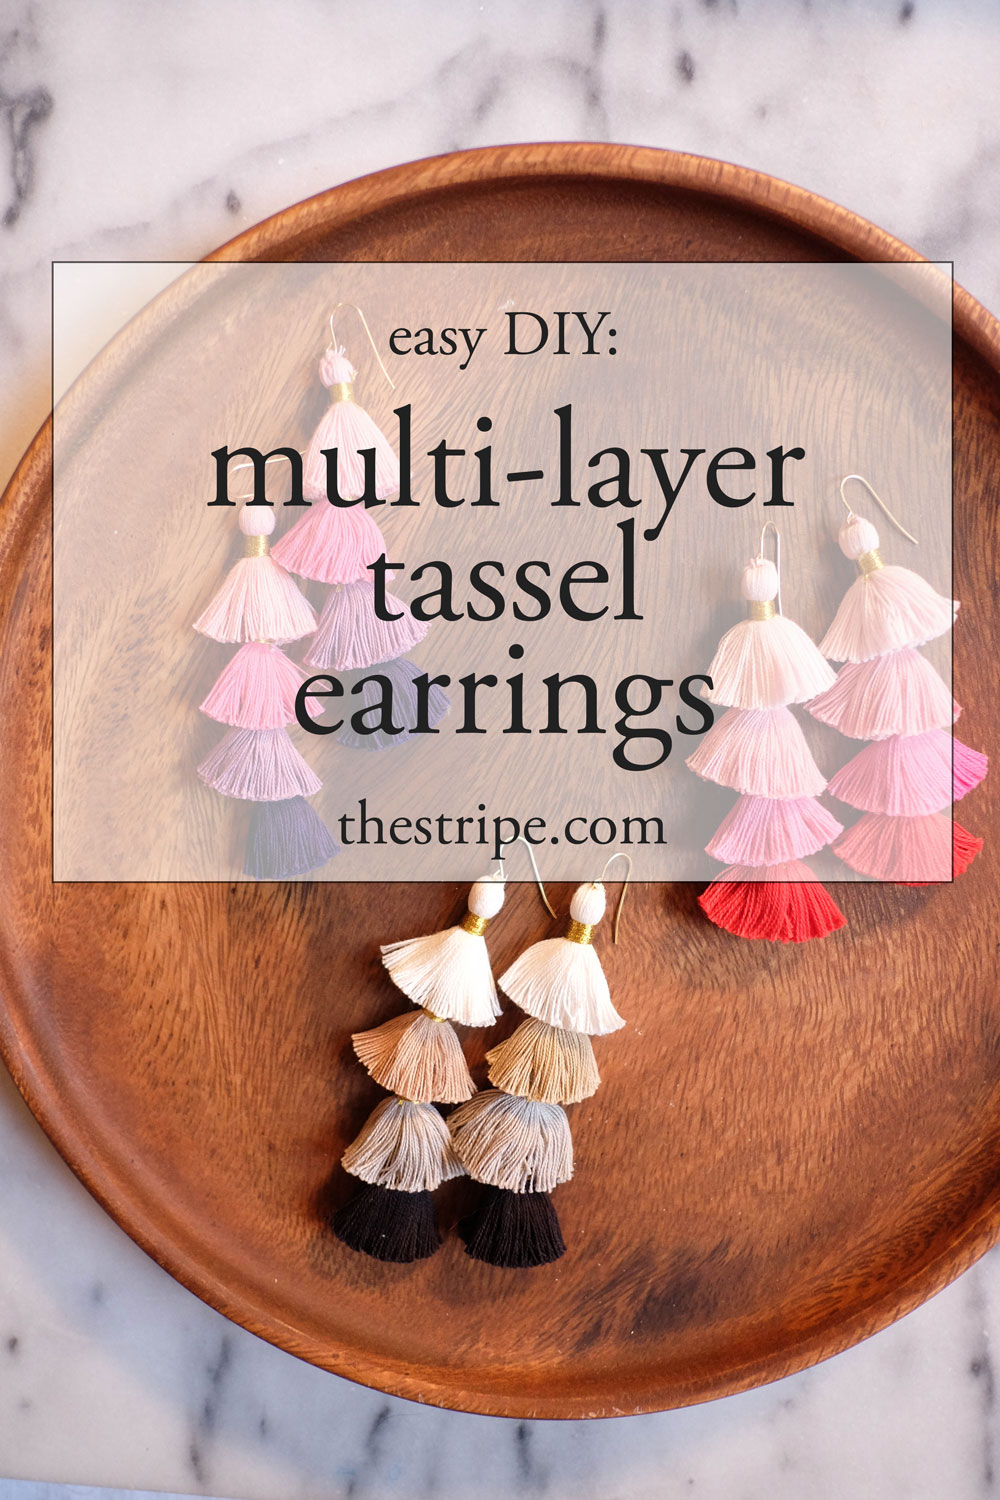 diy tassel earrings // the stripe blog: easy tutorial to create layered tassel earrings.